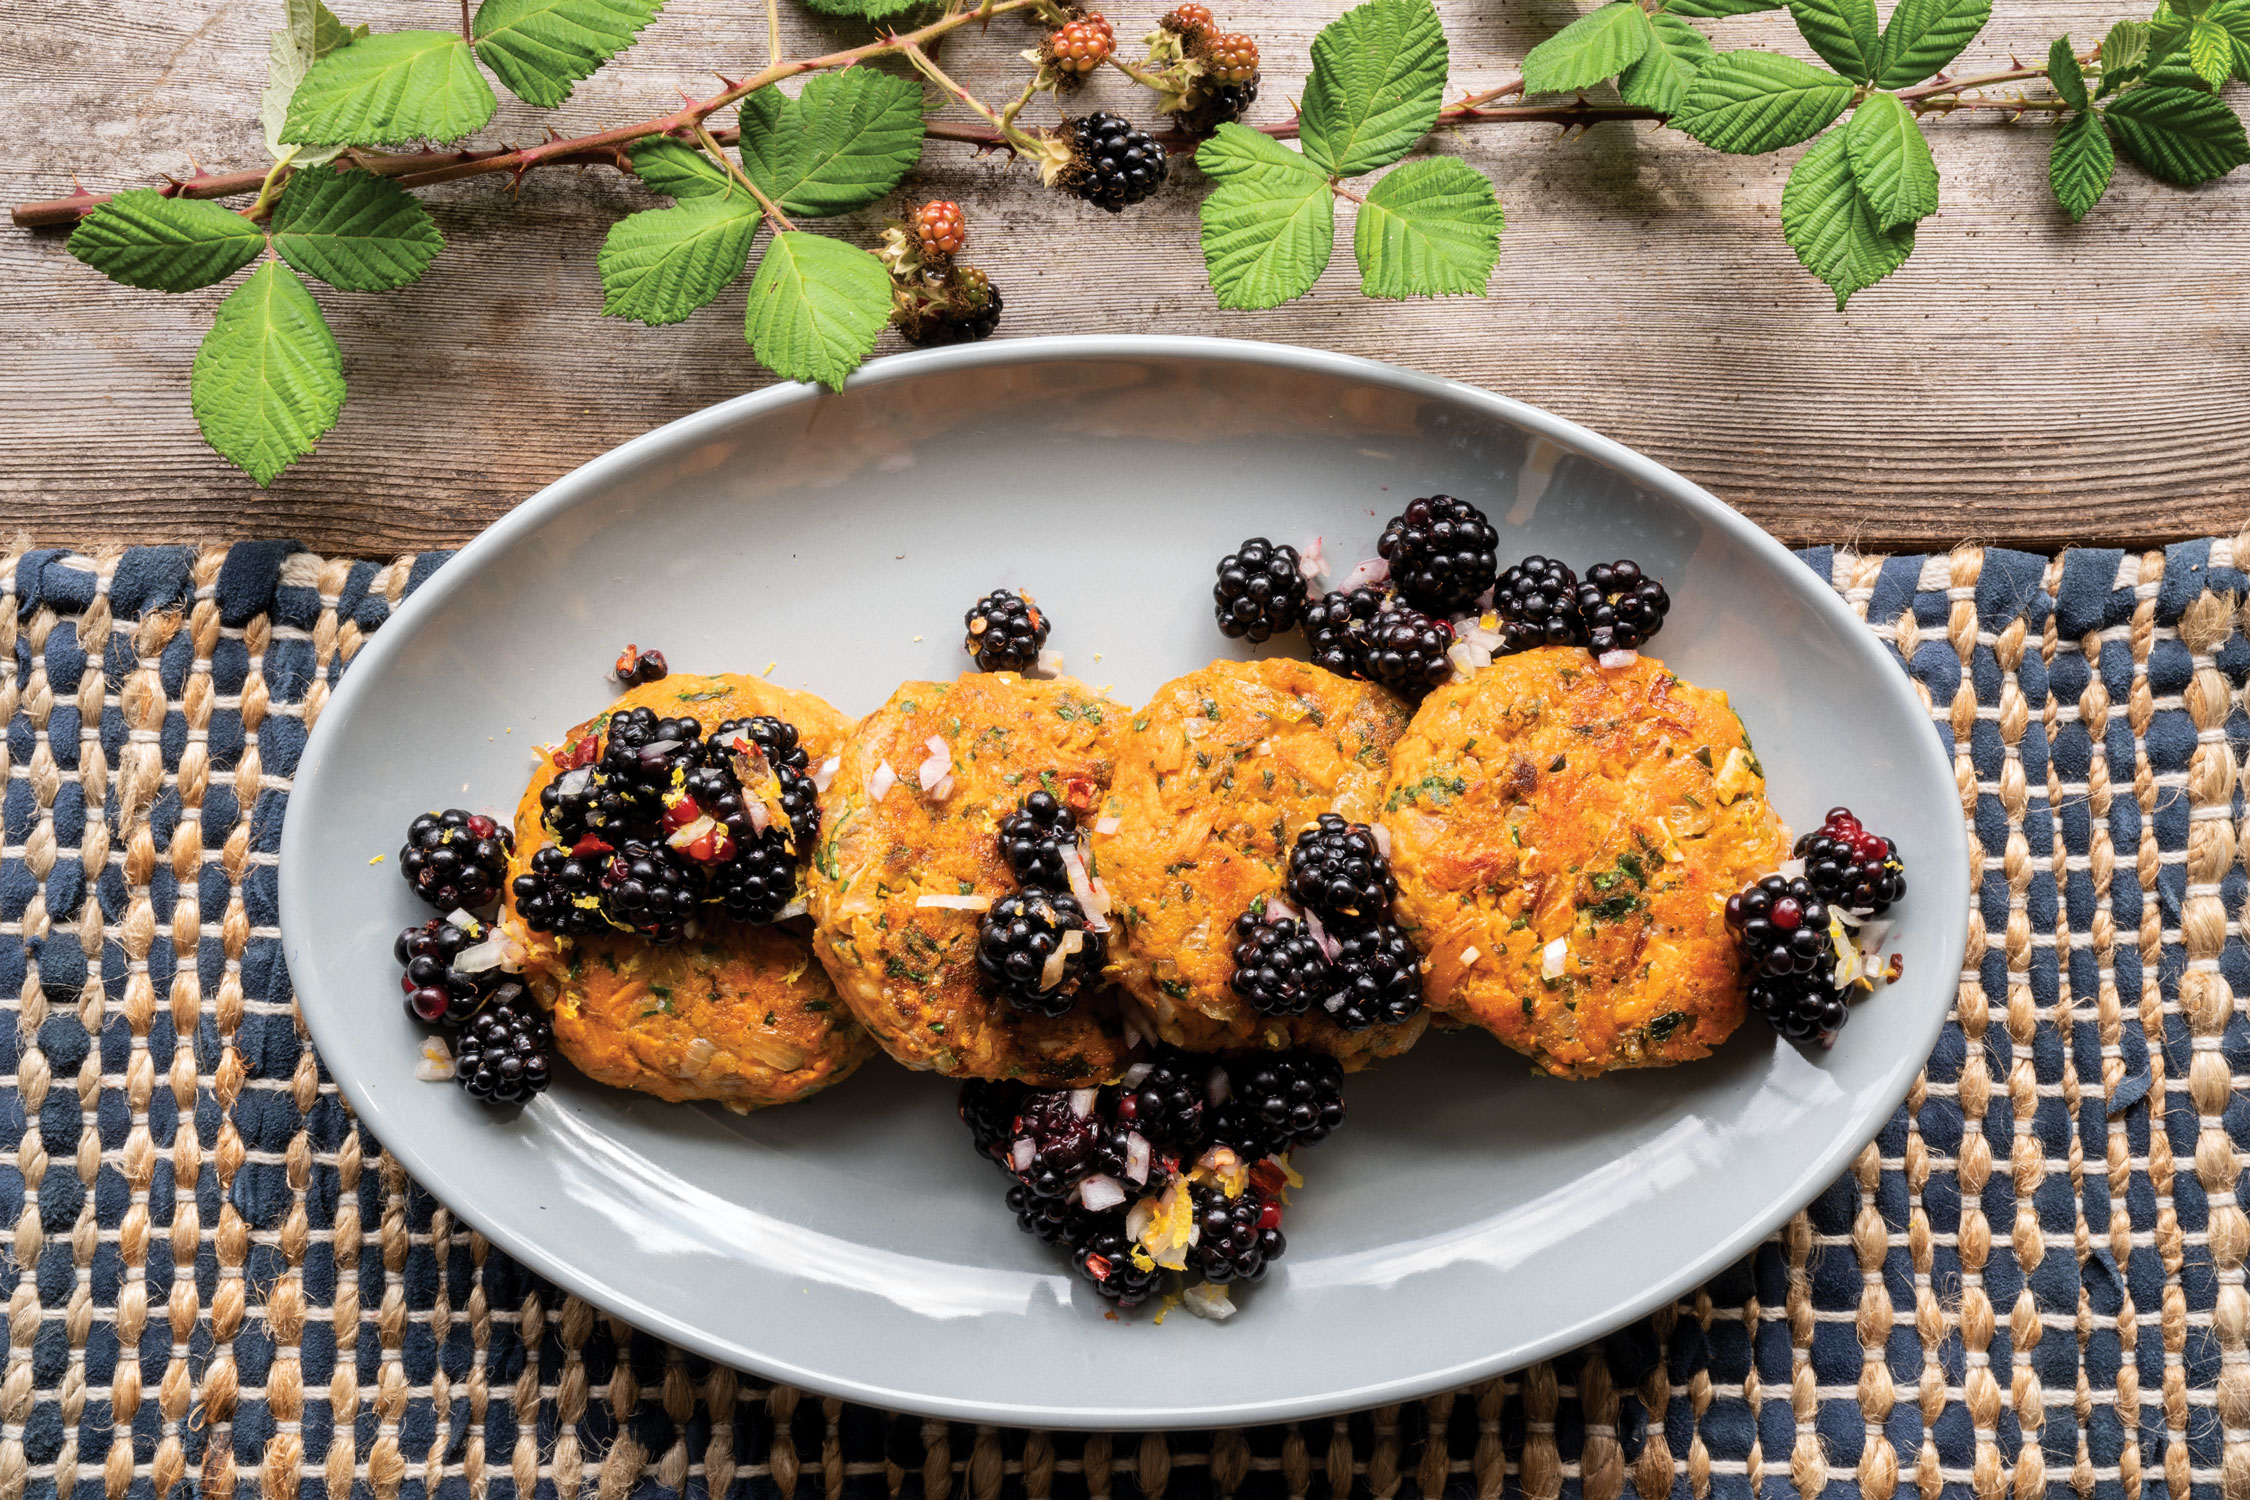 Roasted Jewel Yam Cakes with Blackberry Salsa